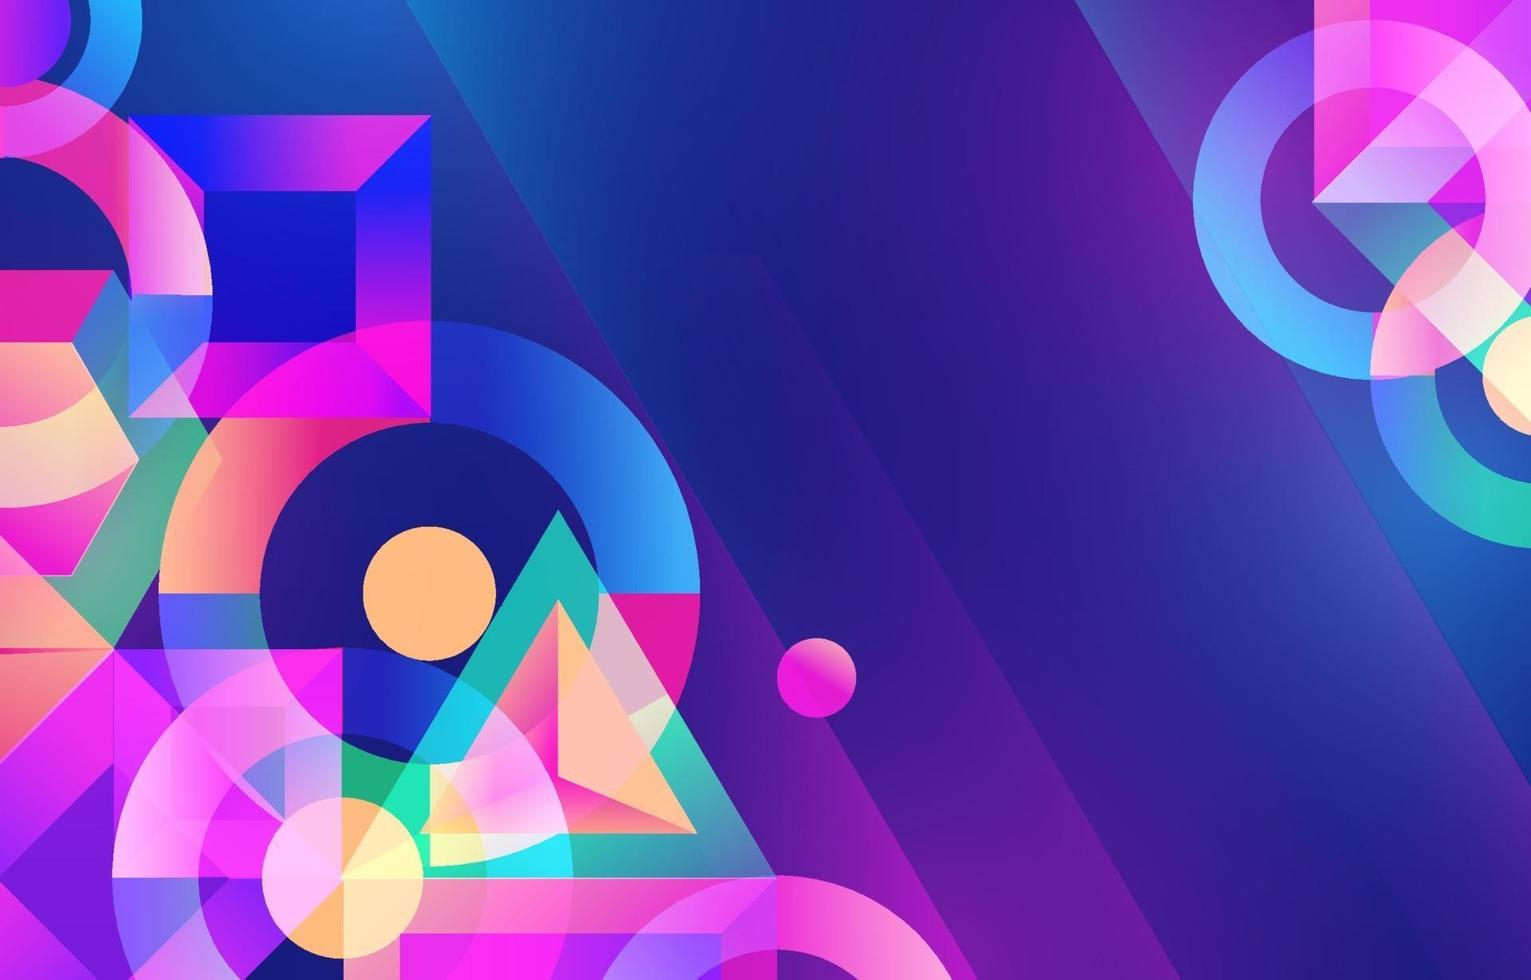 Geometric Abstract Shapes Background vector